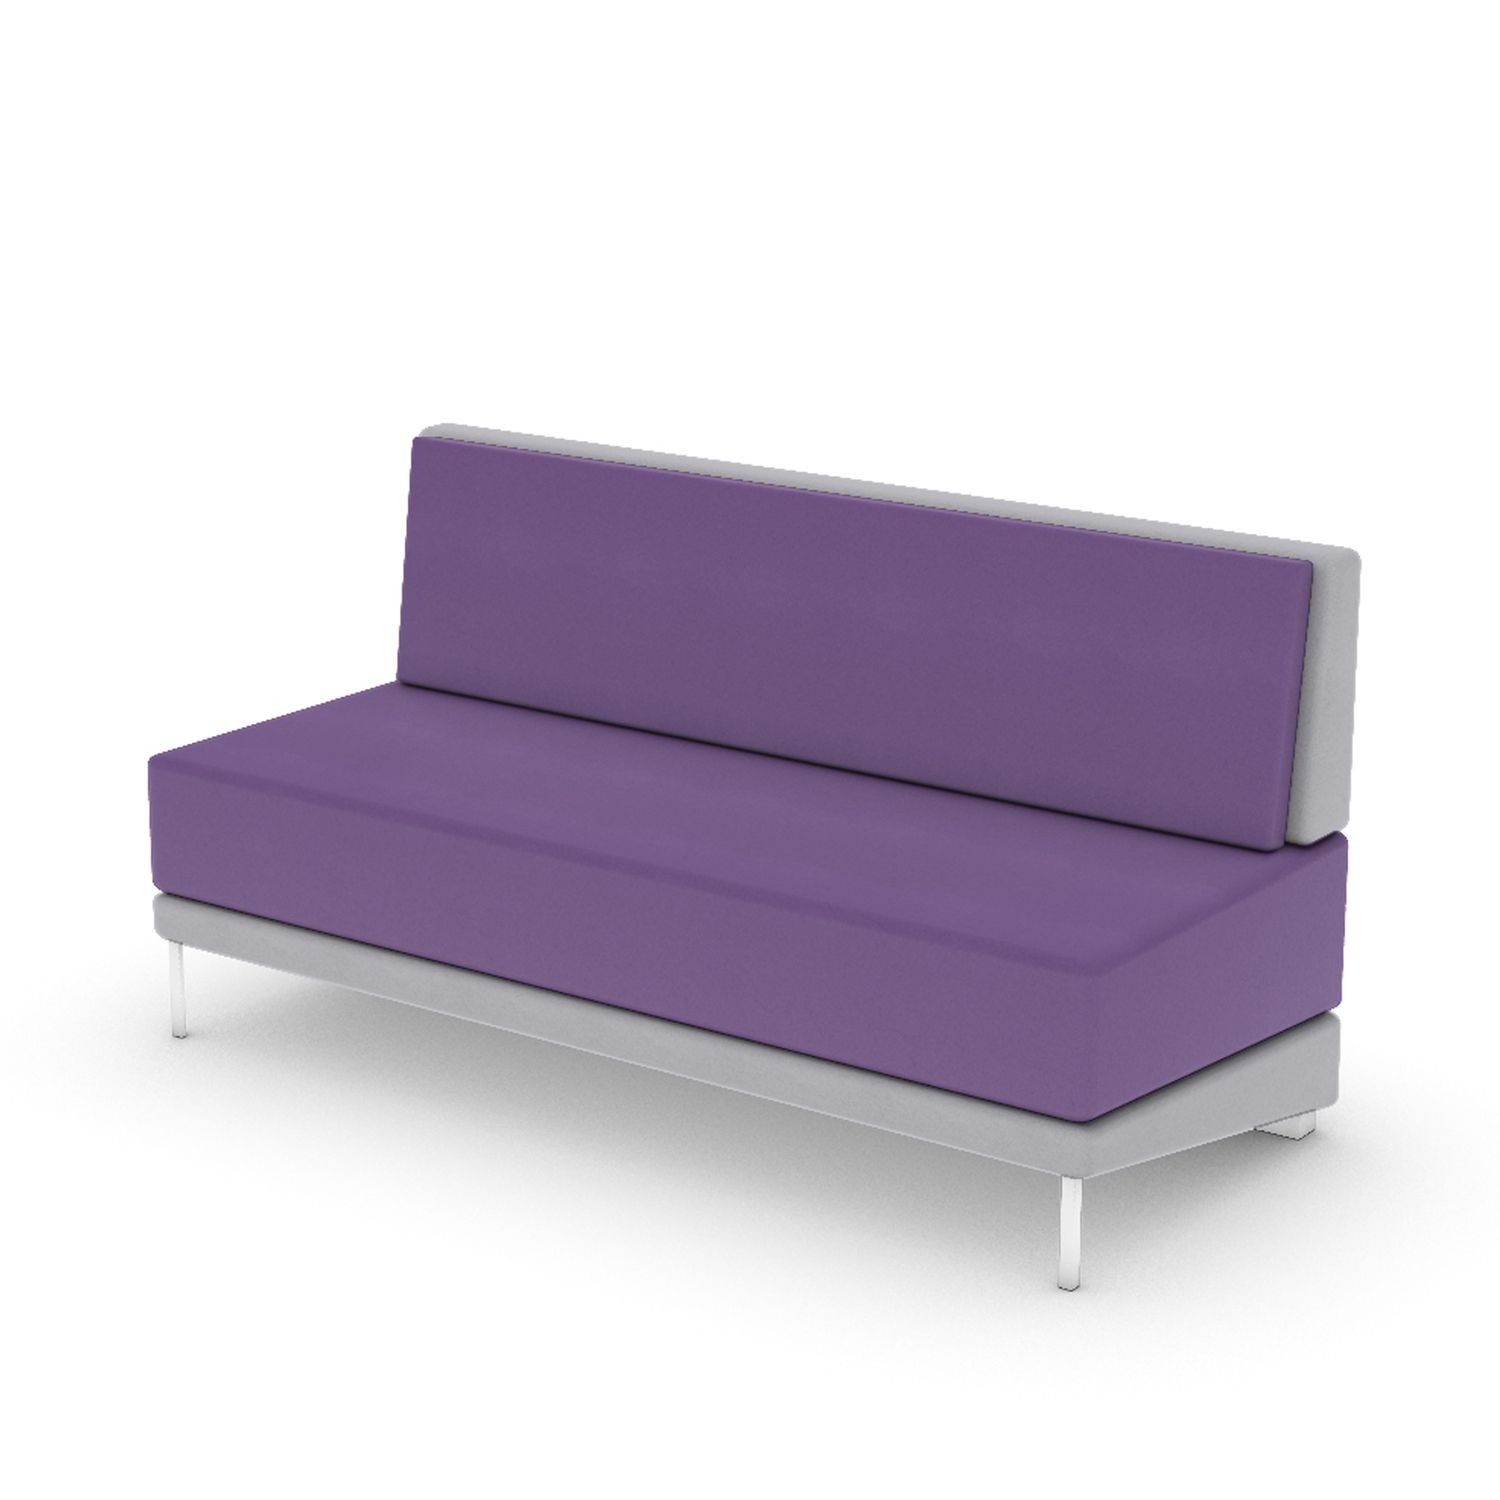 Soft Seating Mount Large Seating Unit